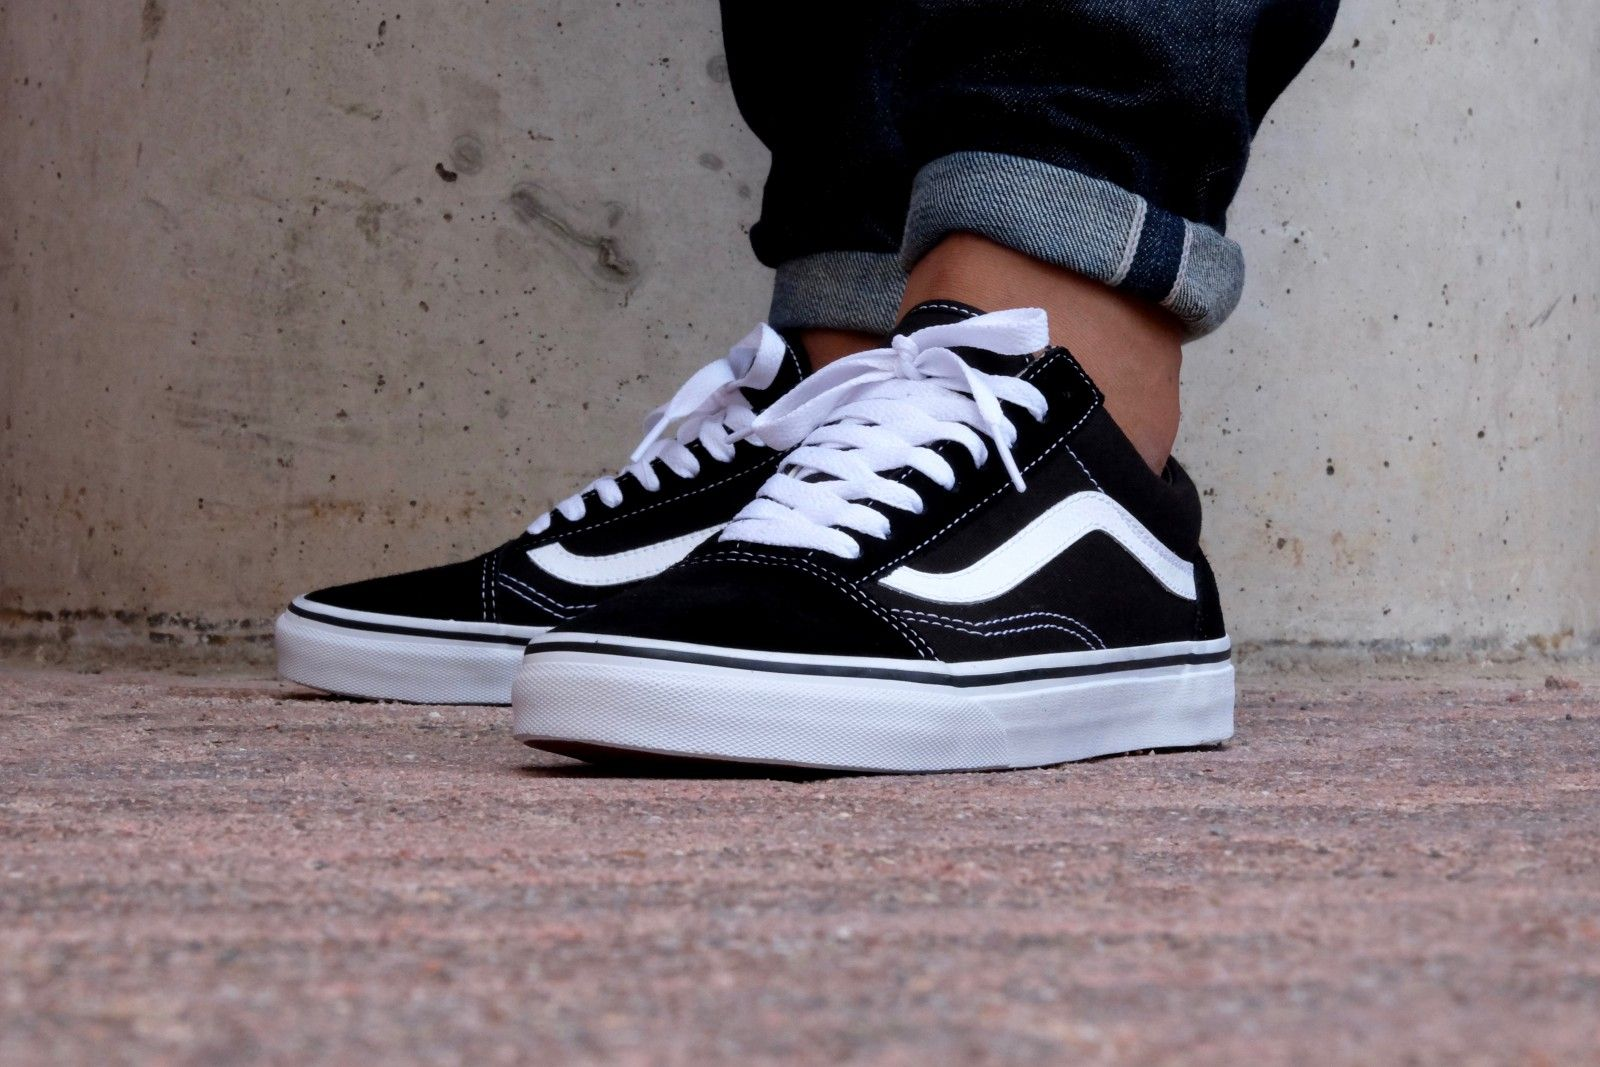 Vans Old Skool Black/White - VN000D3HY28 | Vans schoenen ...